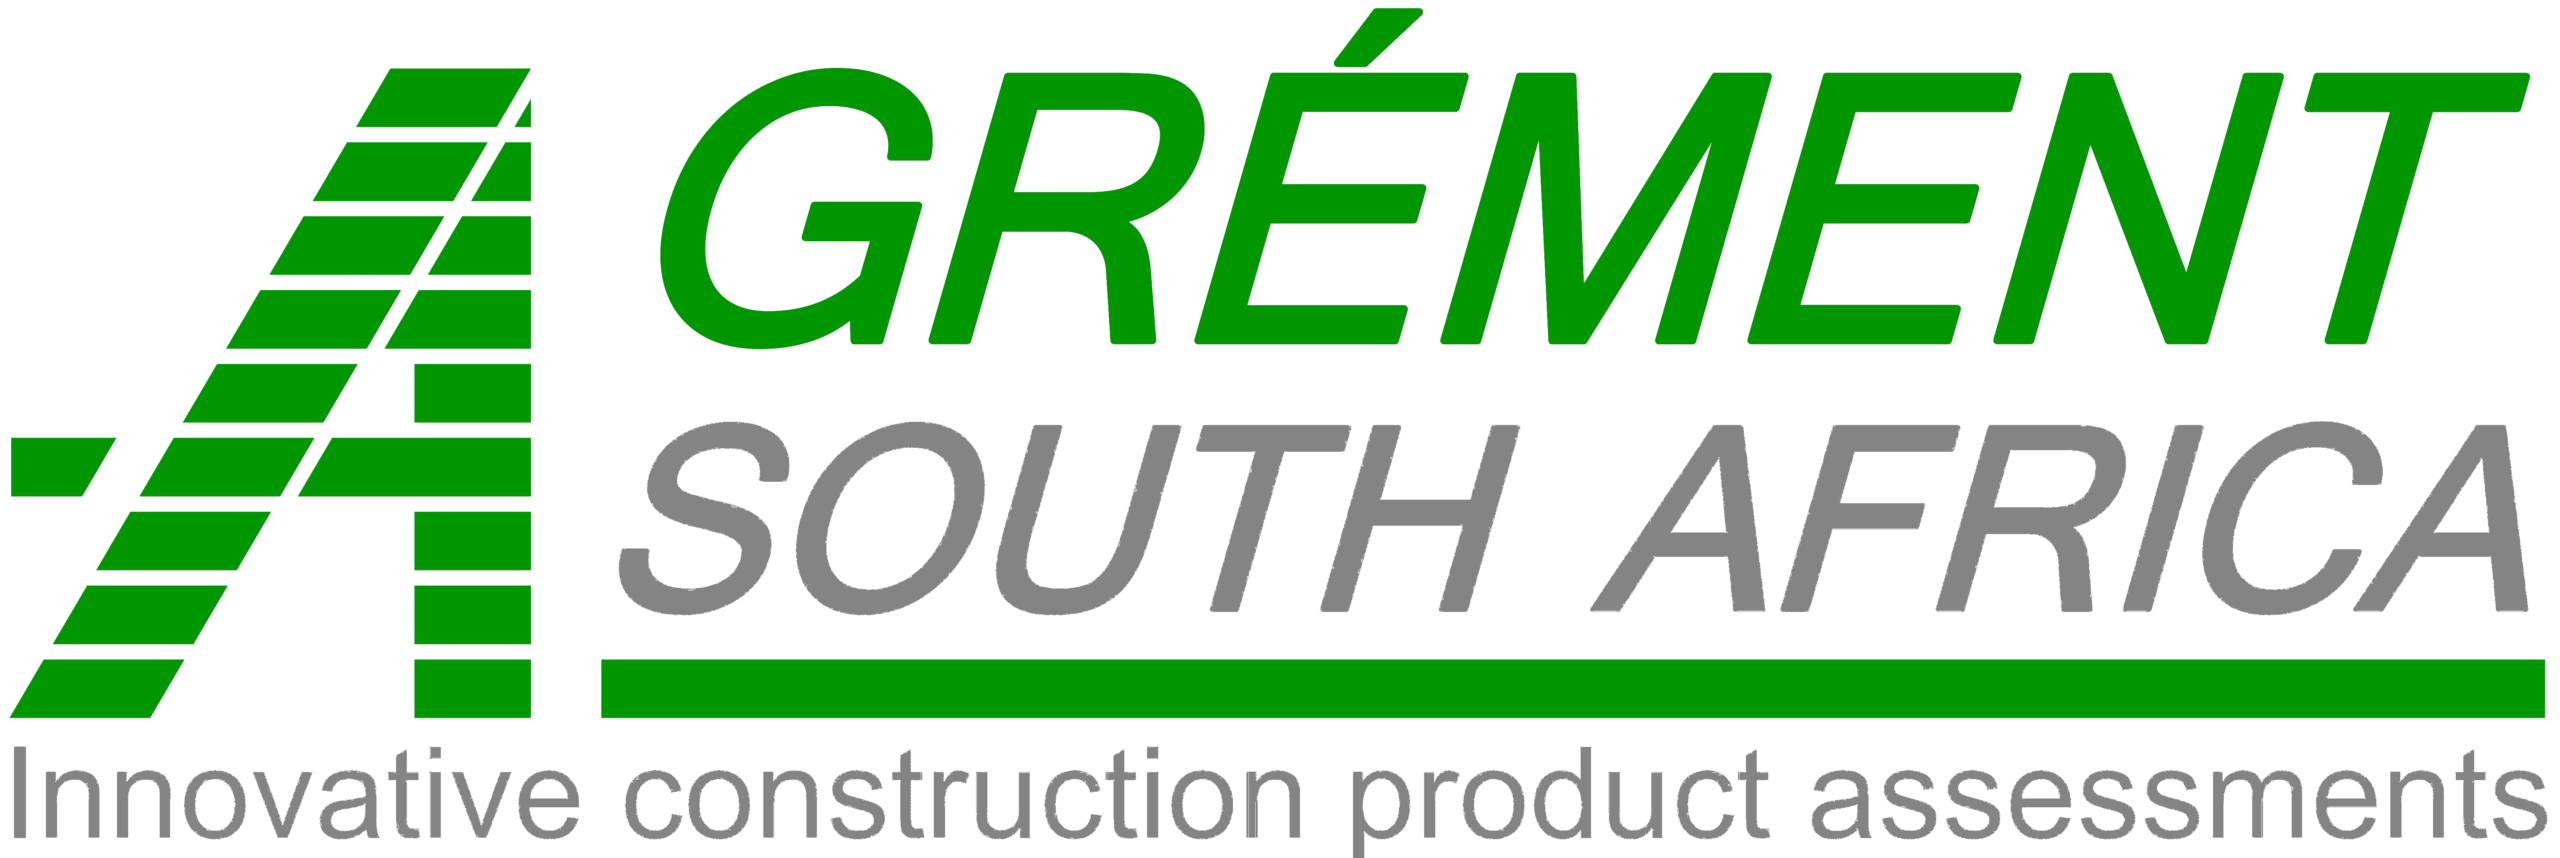 citra construction and agrement south africa